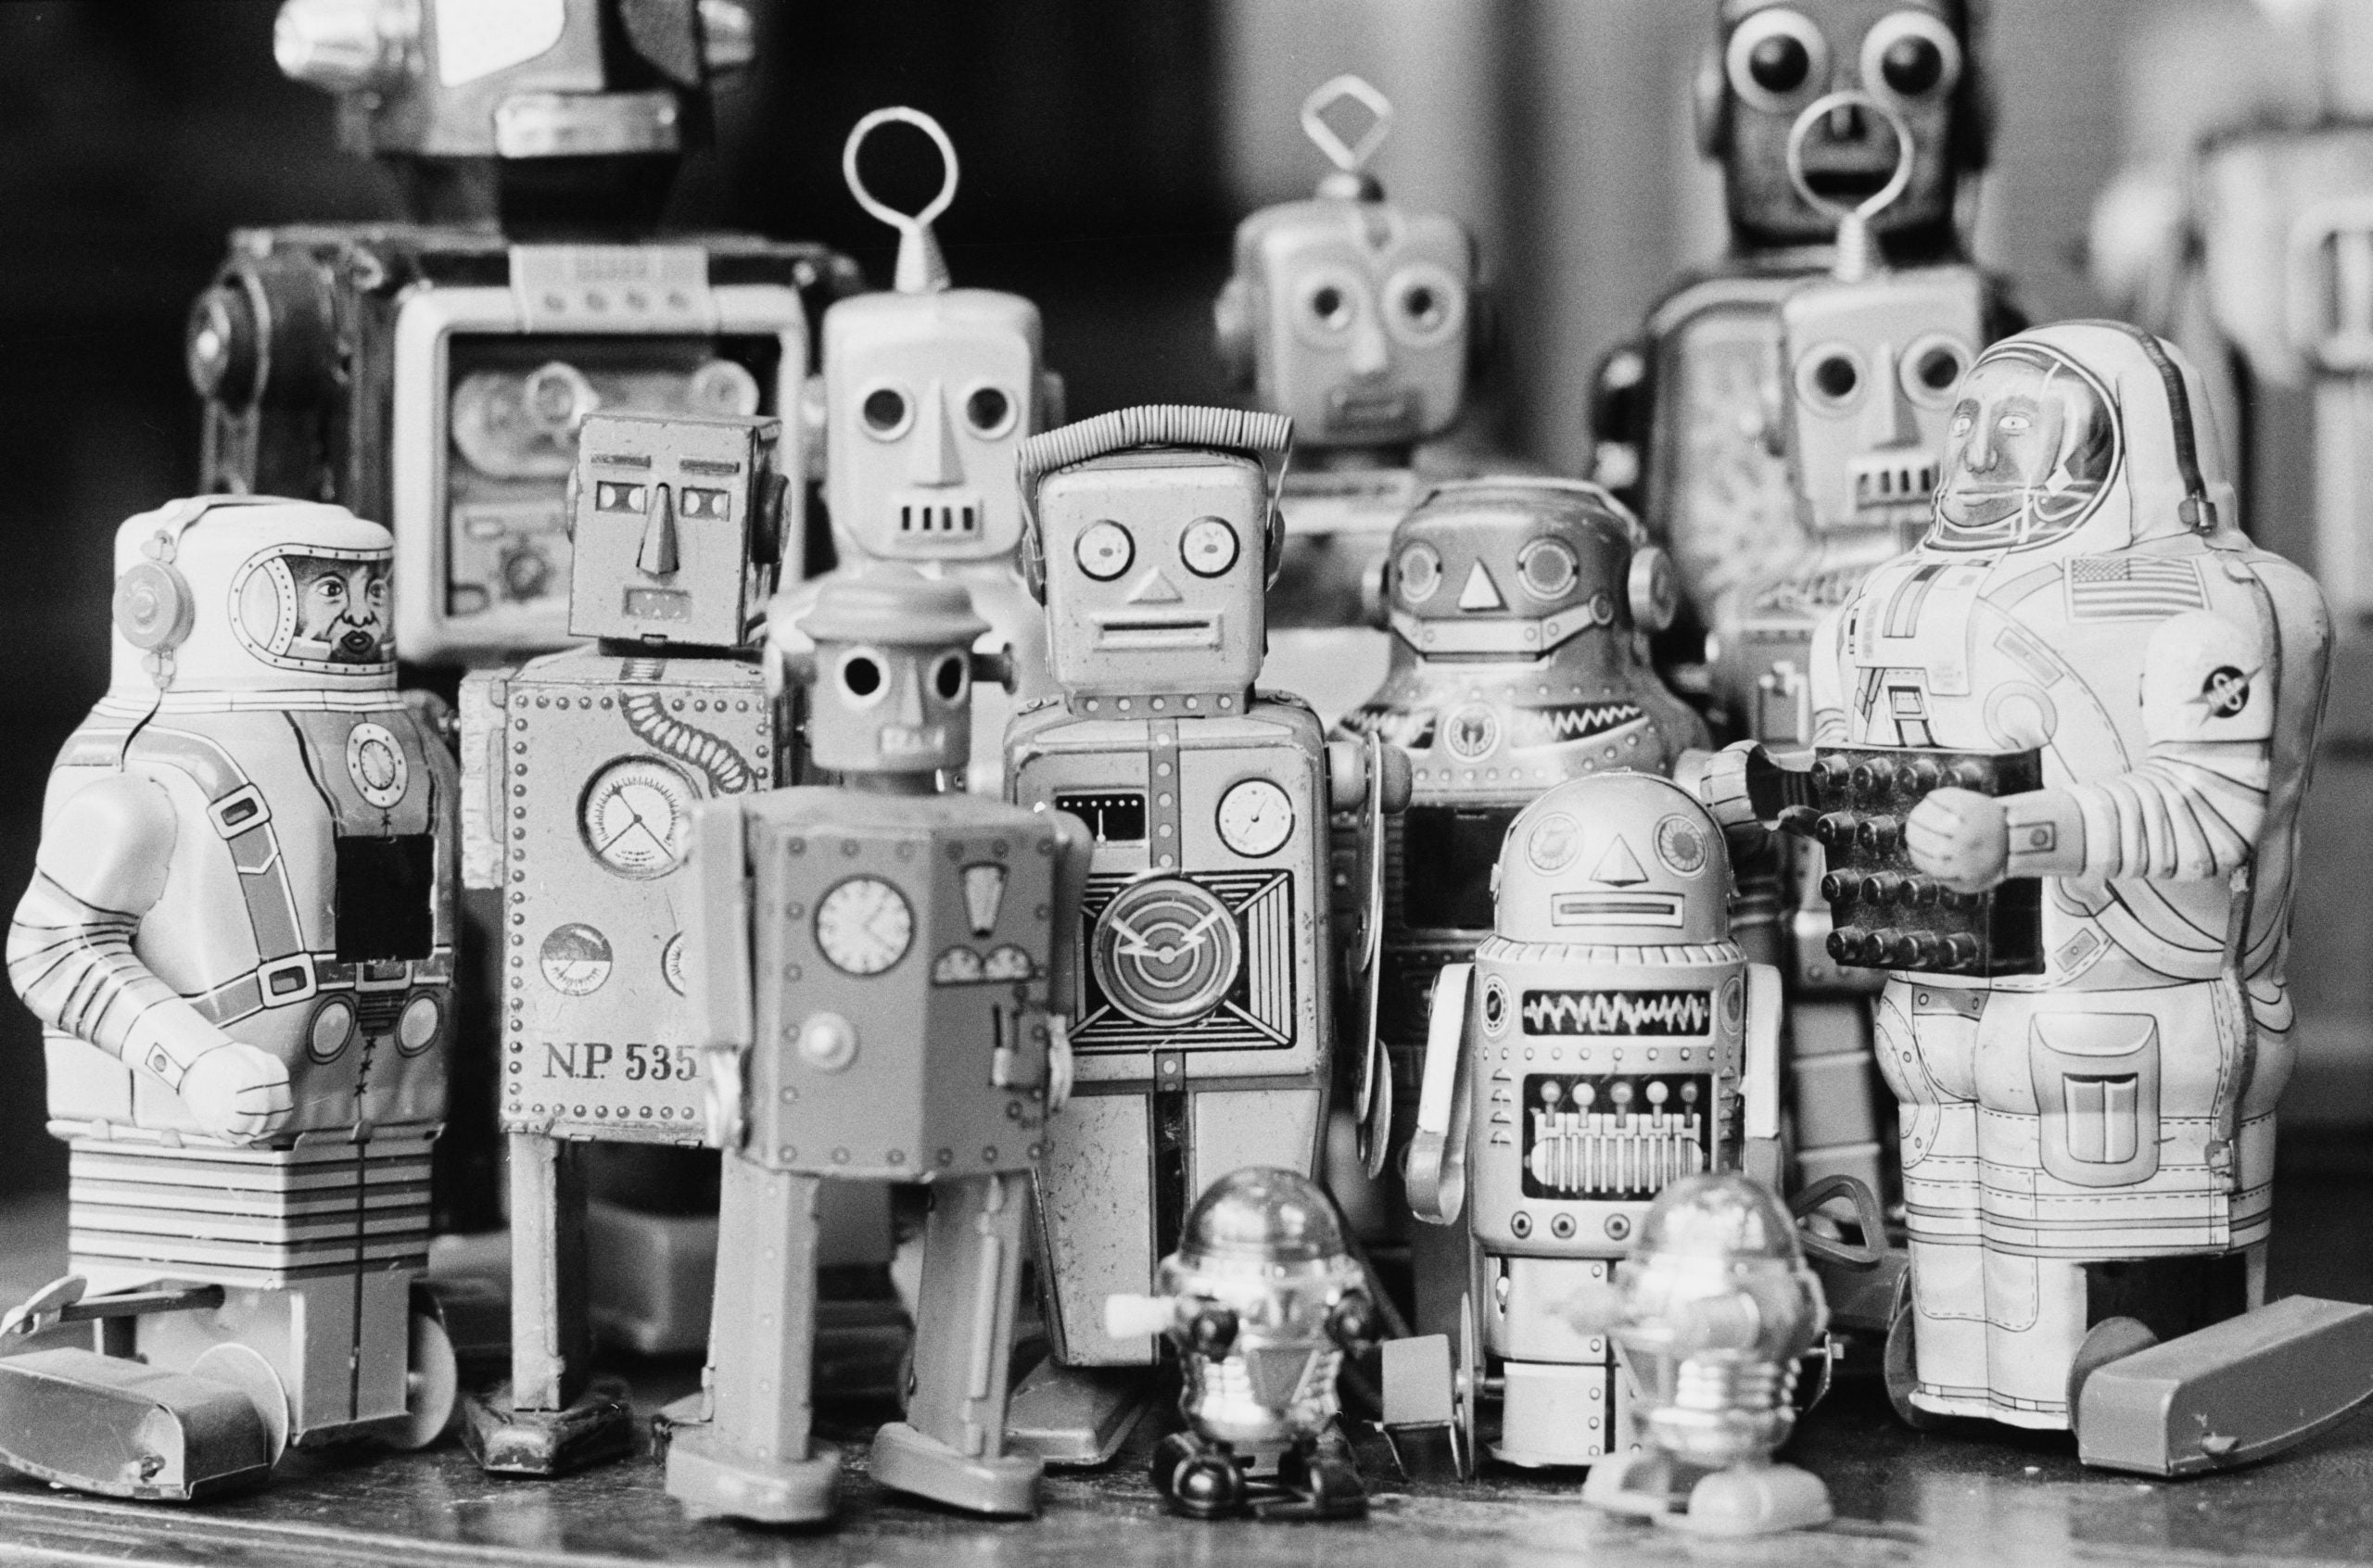 Social care robots privatise loneliness, and erode the pleasure of being truly known